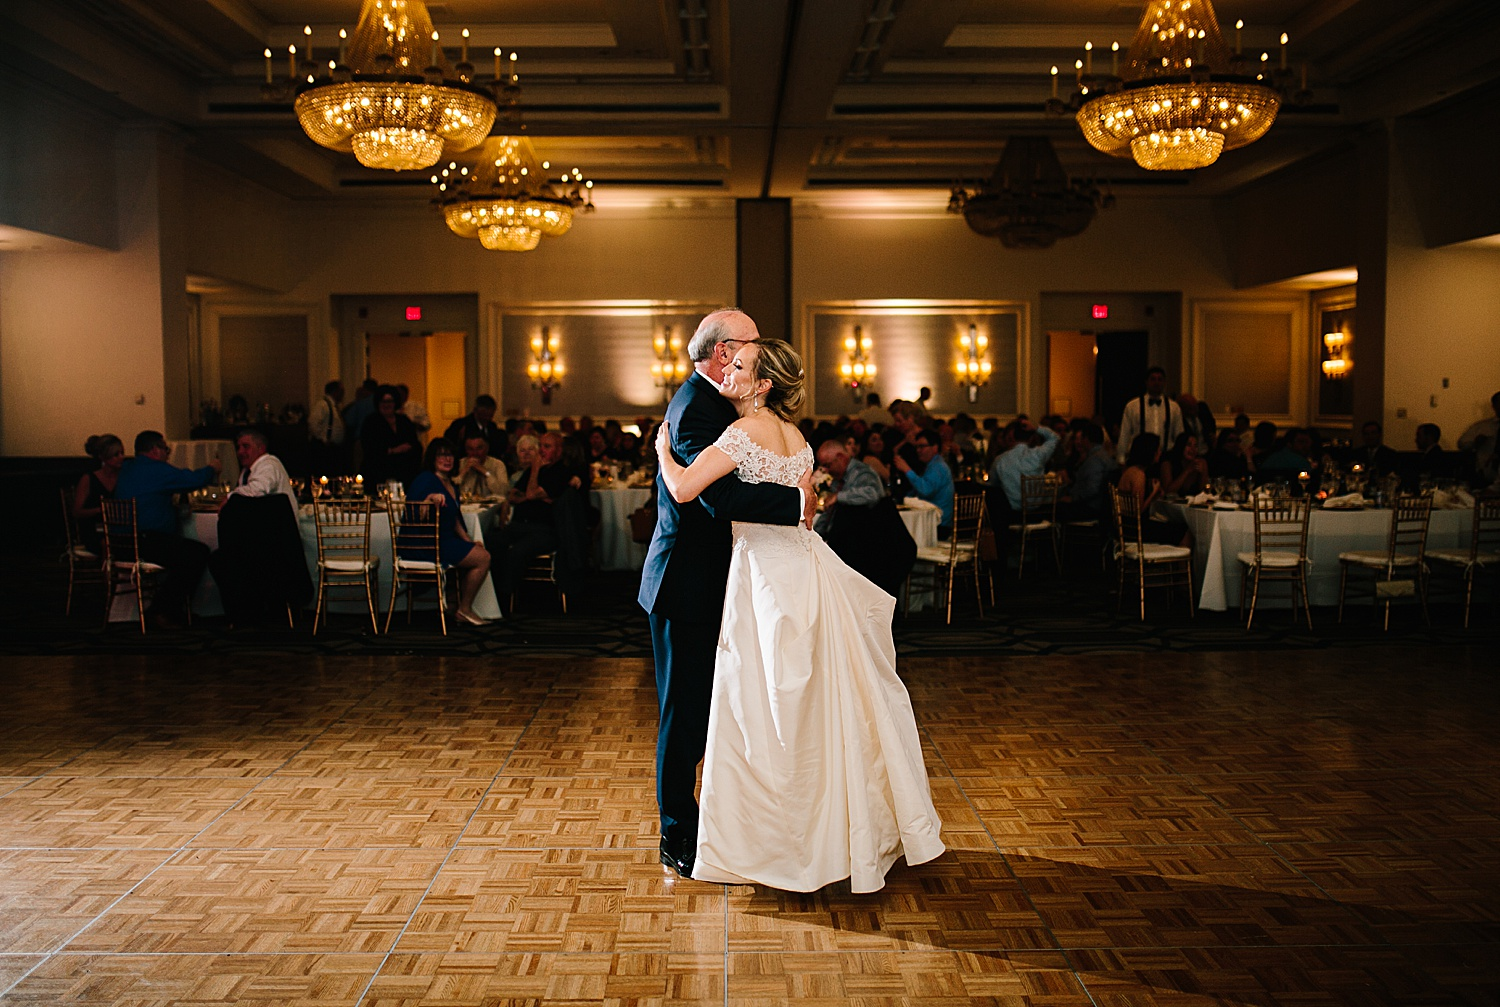 courtneyryan_sheraton_societyhill_philadelphia_merchantsexchange_wedding_image109.jpg